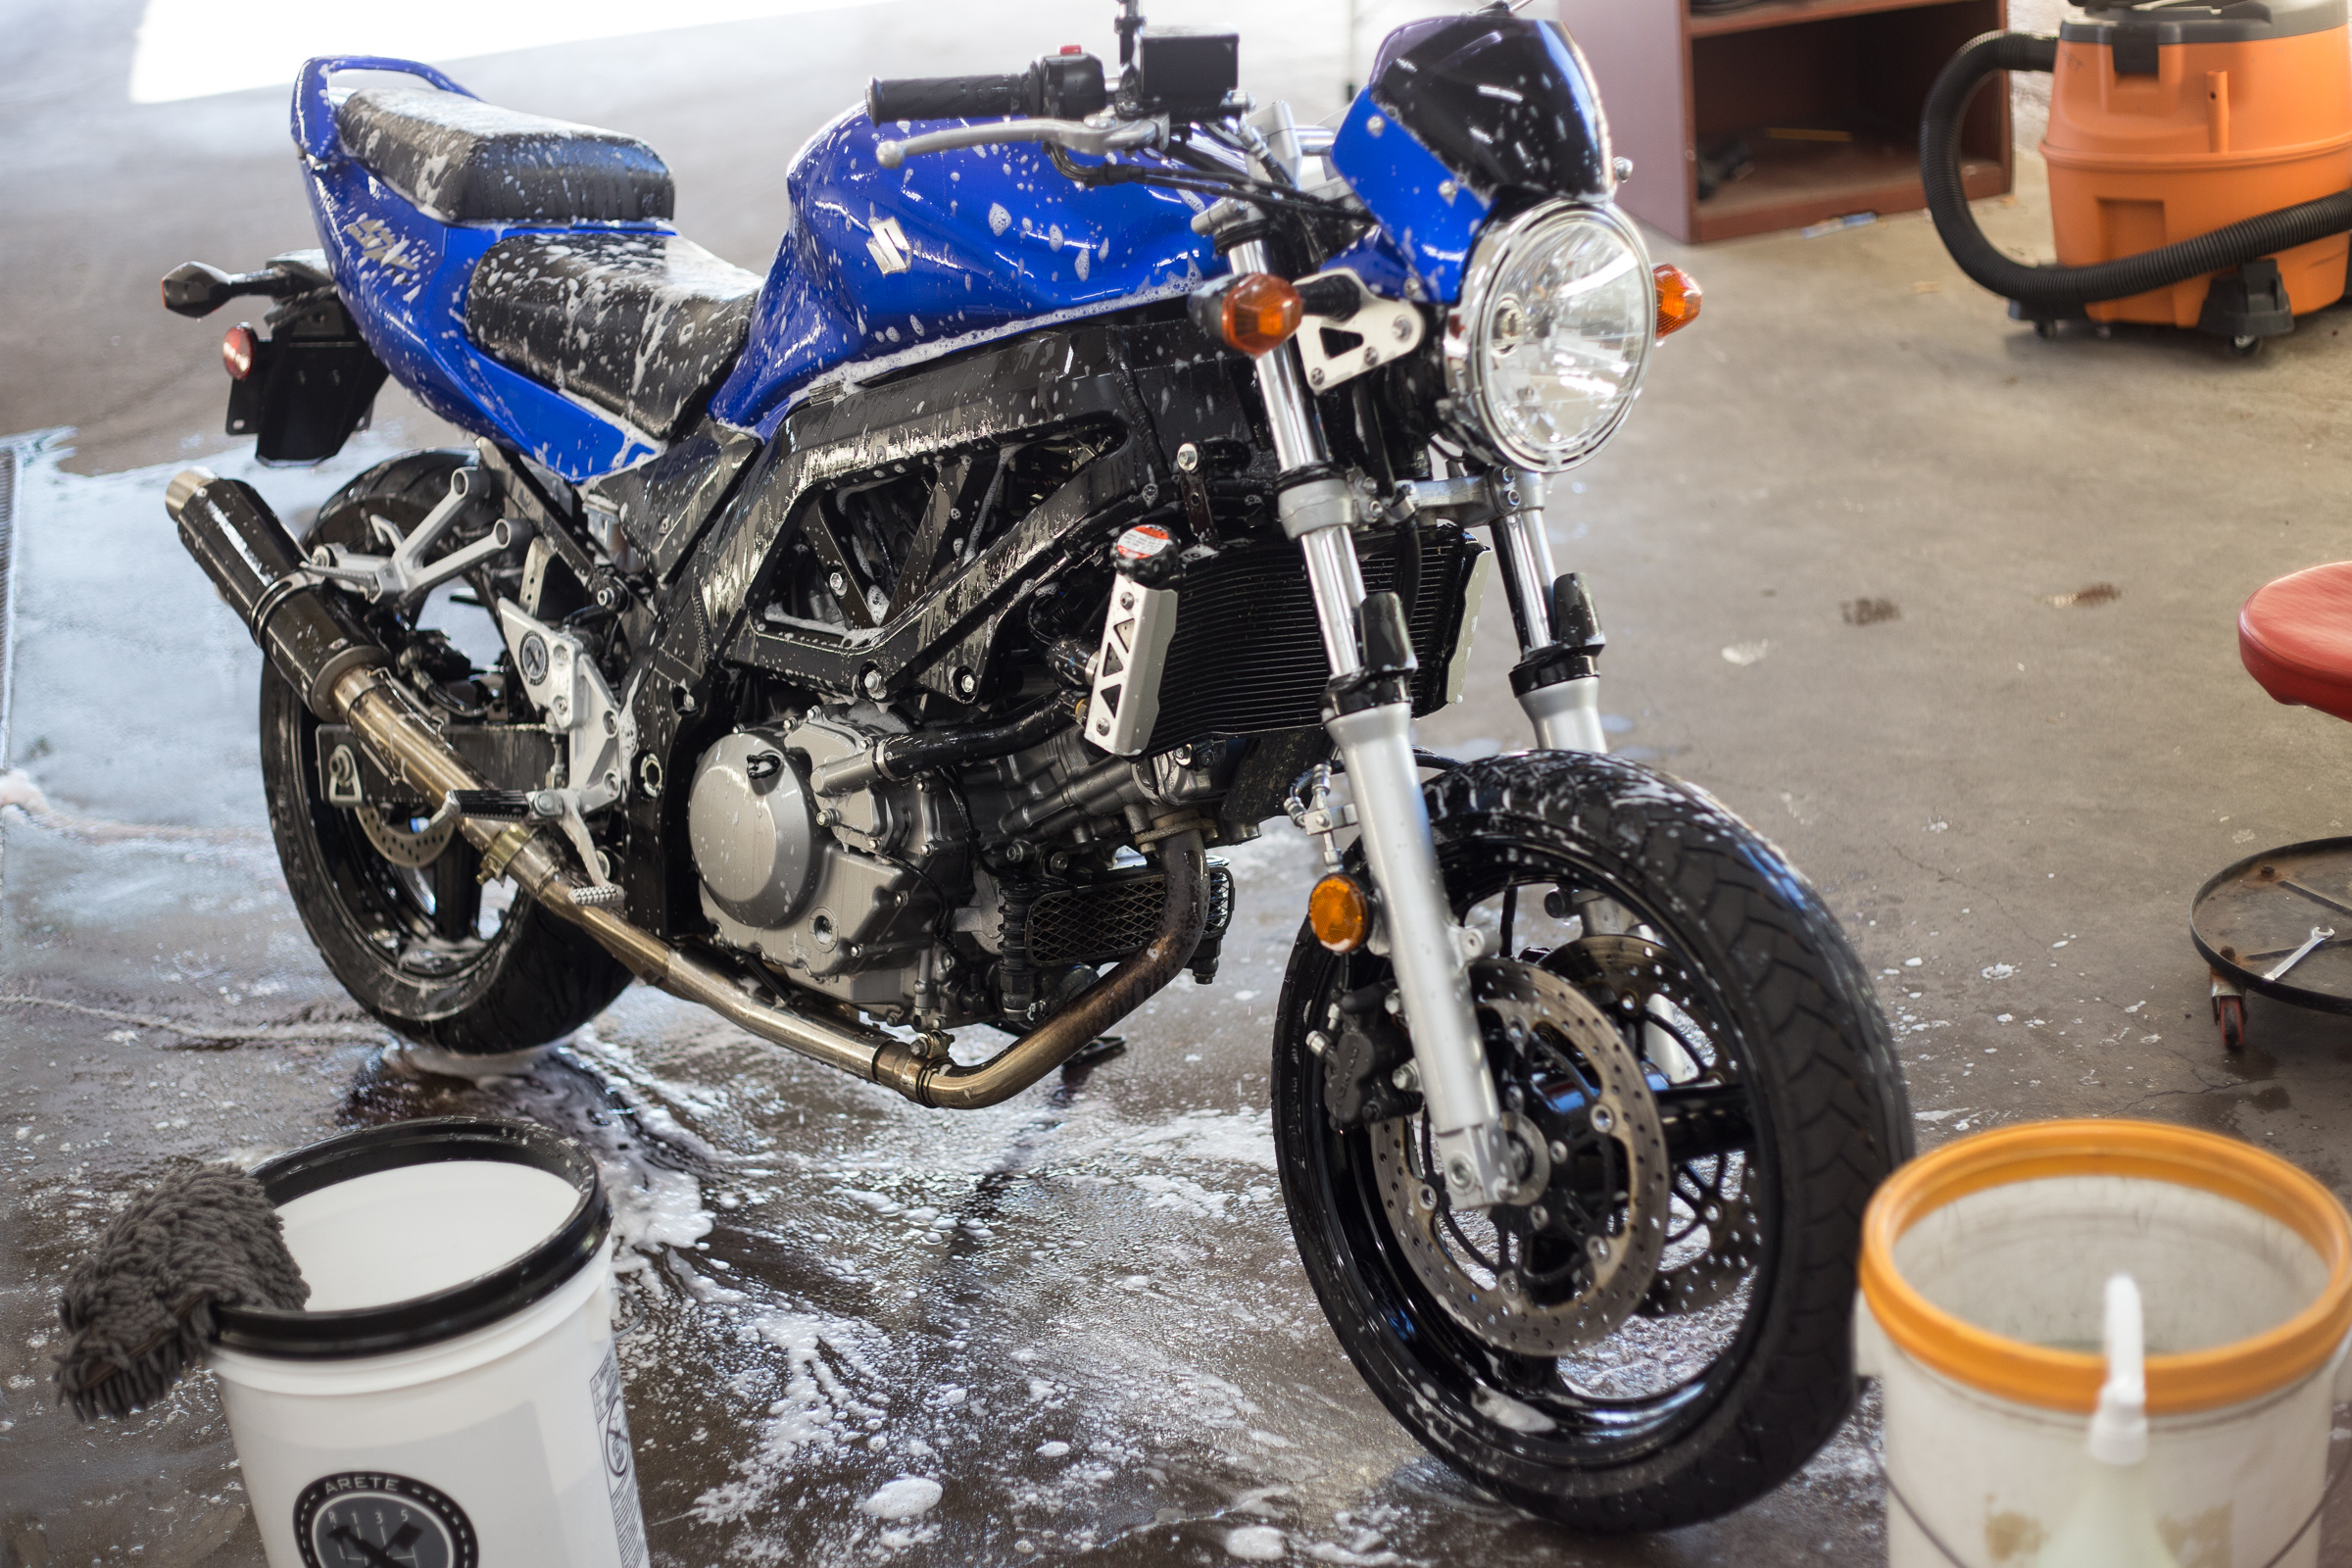 The remainder of the bike received Iron-X and a nano-clay treatment on the parts to be polished with plenty more attention to hard to reach areas.